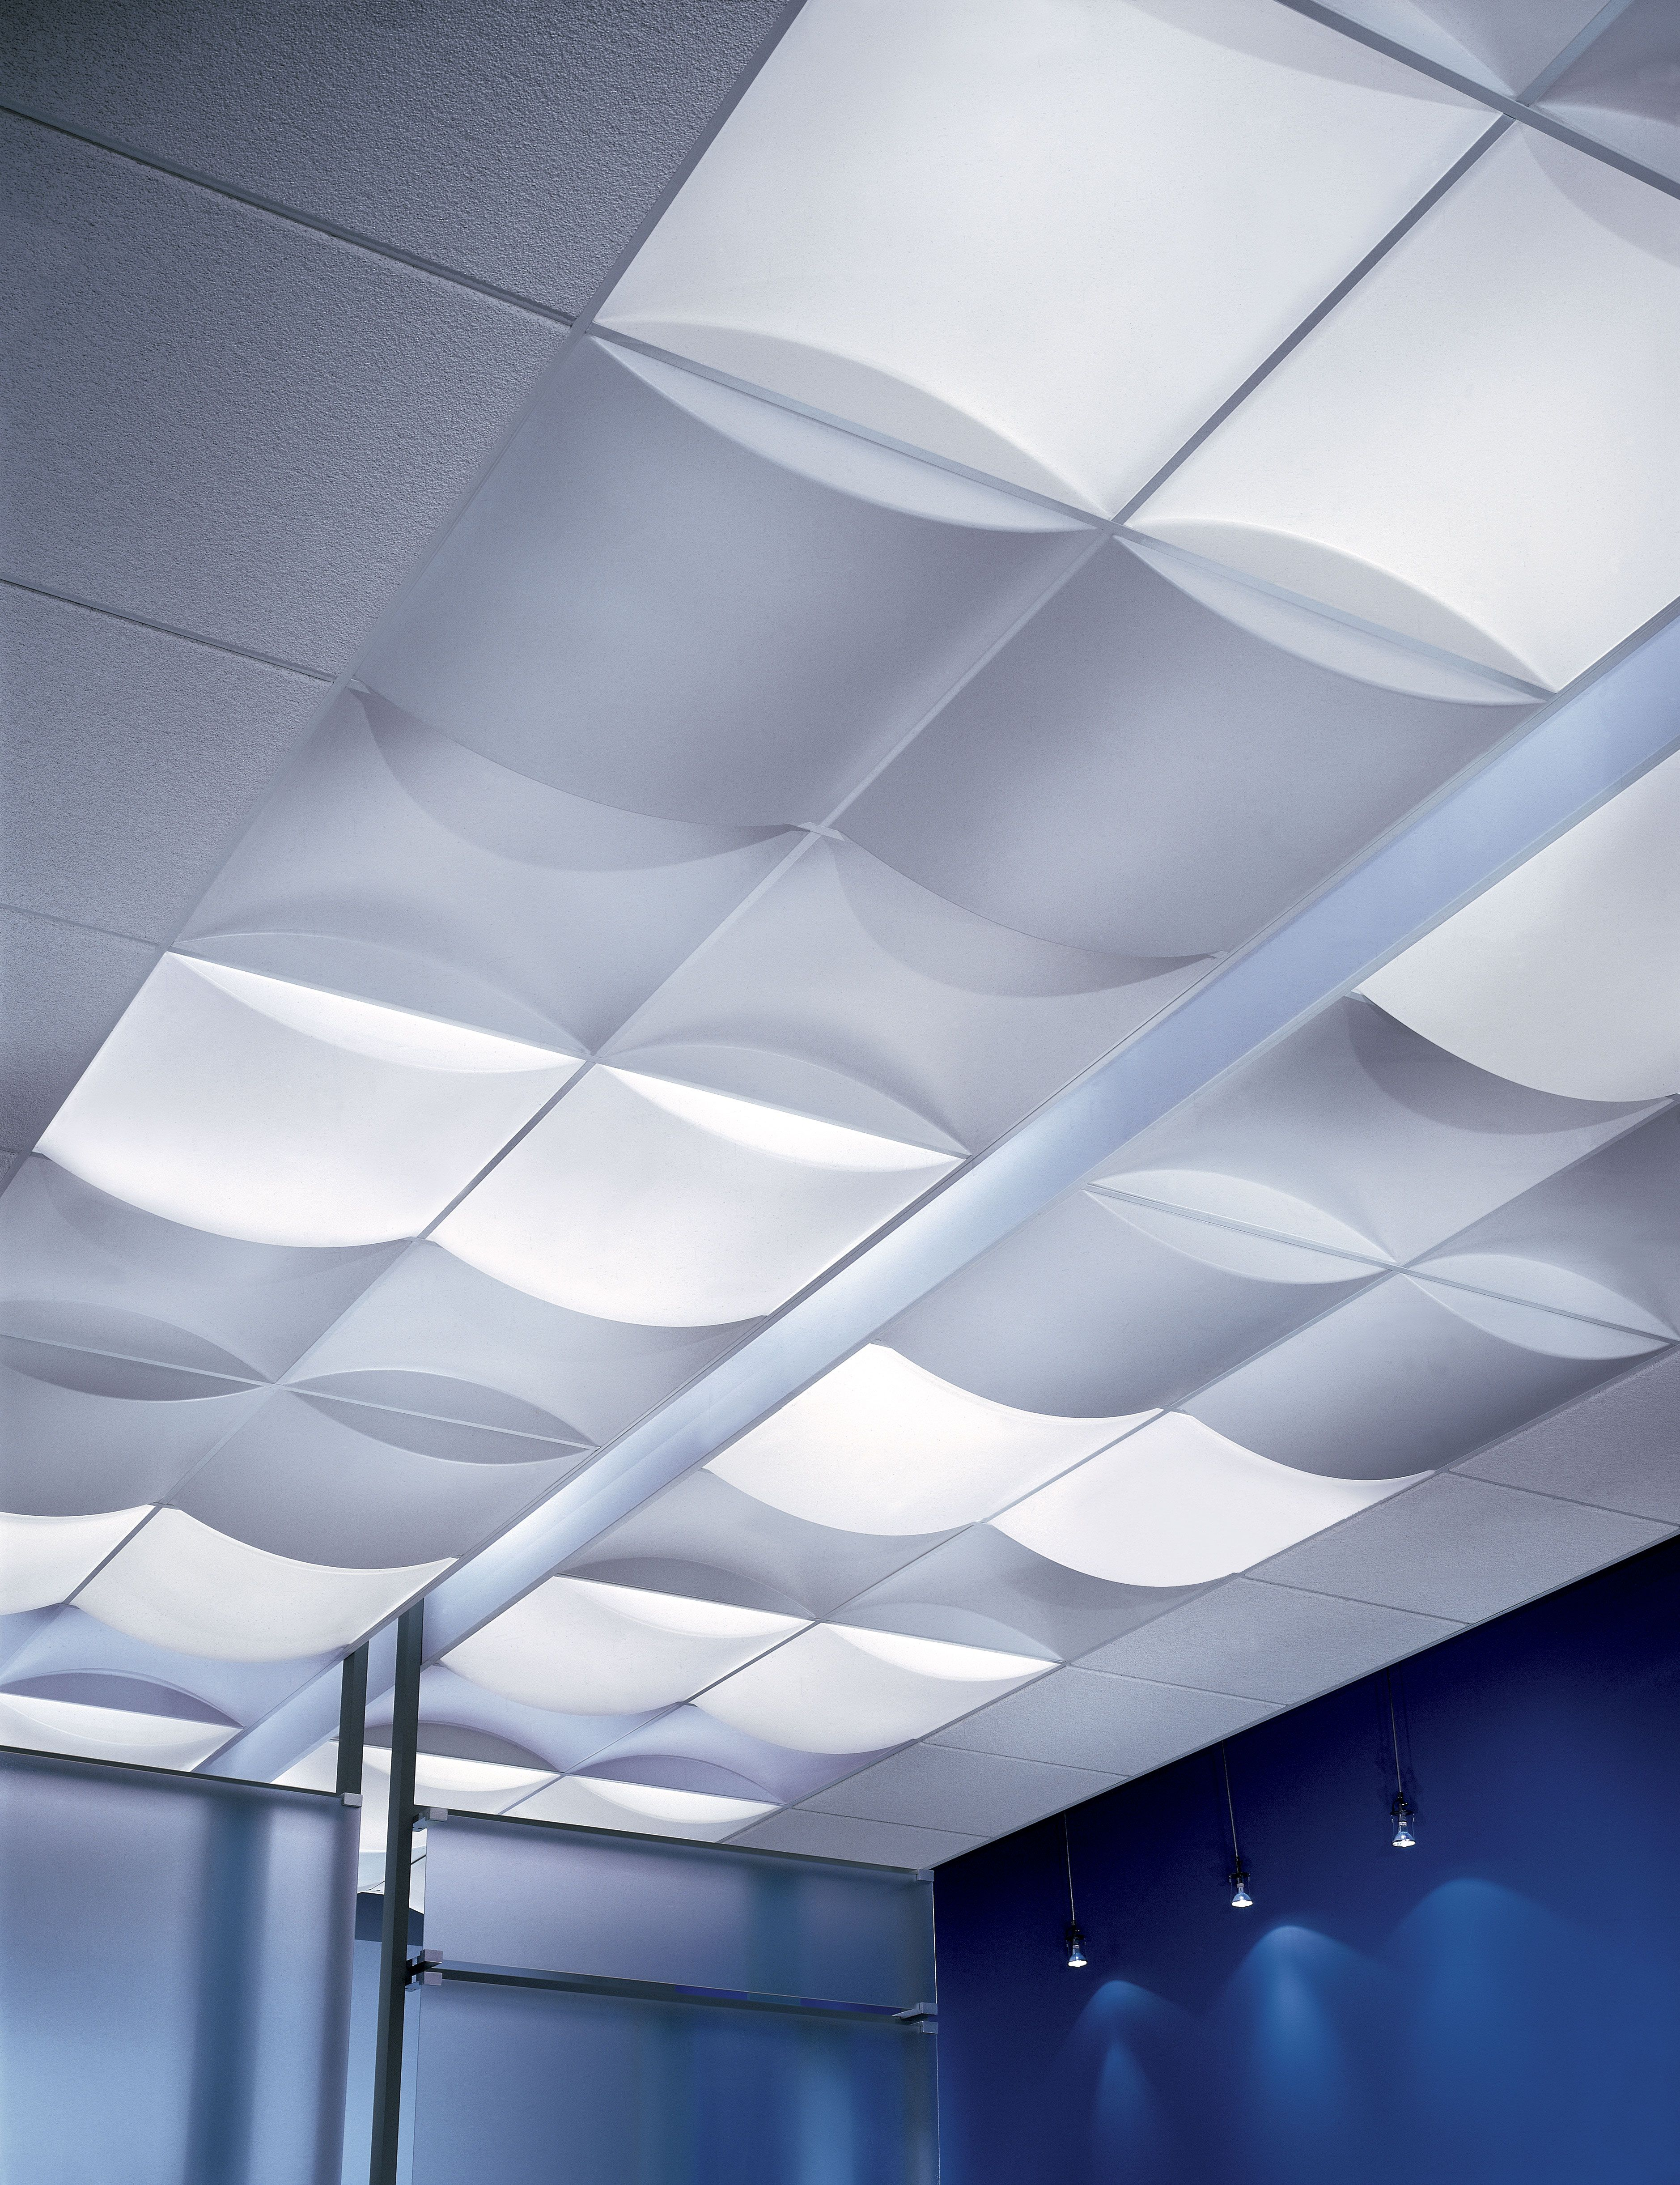 mercial drop ceiling tiles Google Search